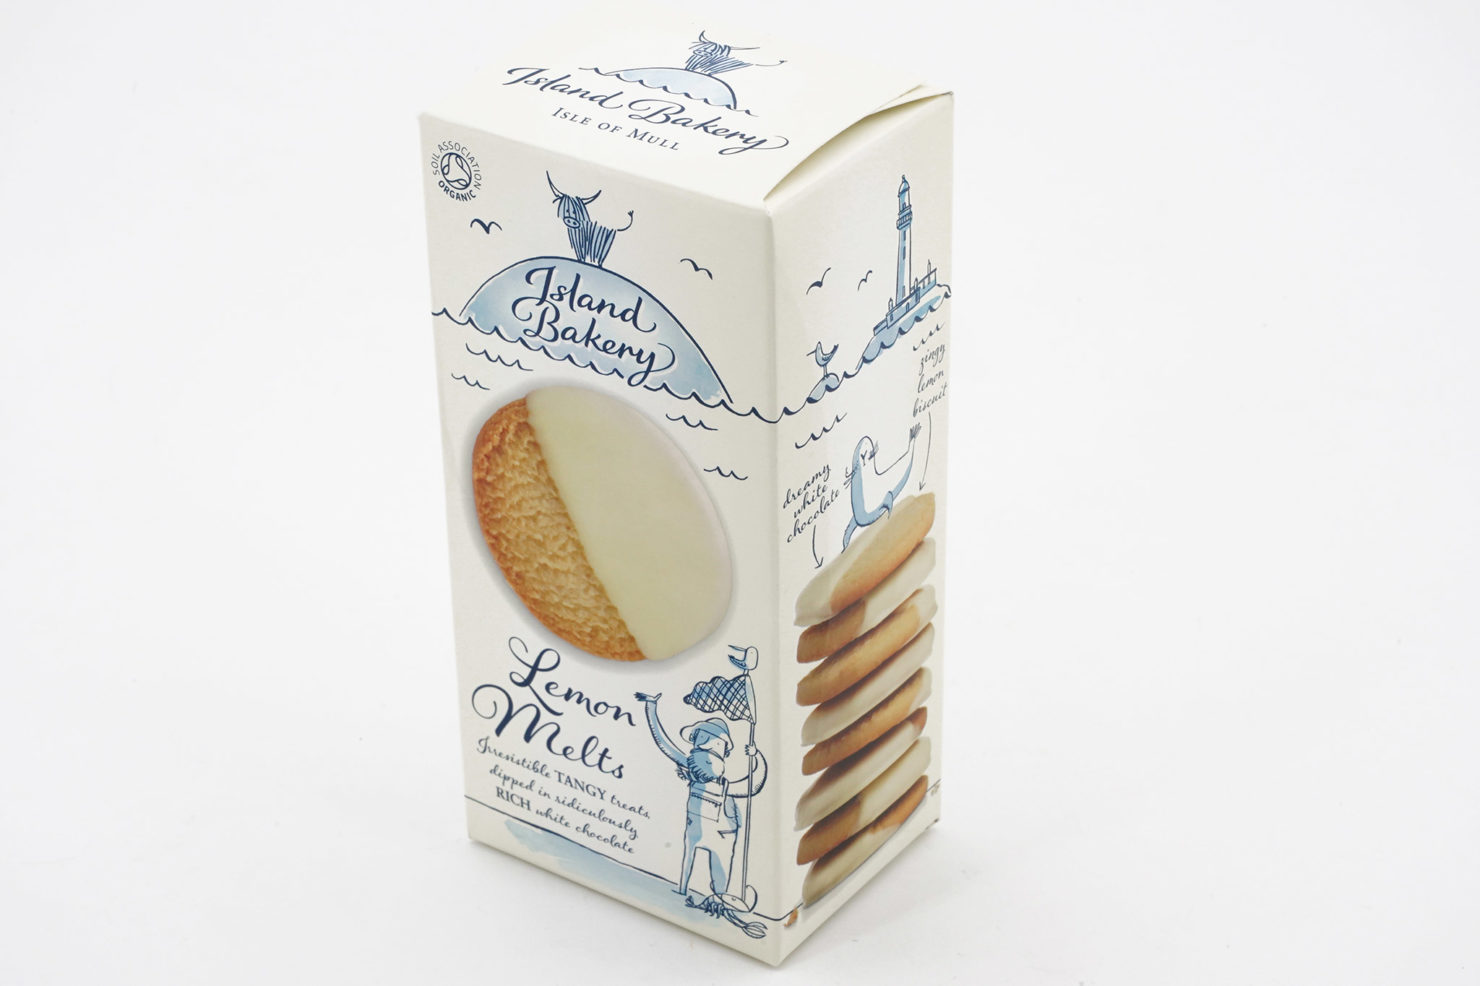 LEMON MELTS 150GR ORGANIC - ISLAND BAKERY